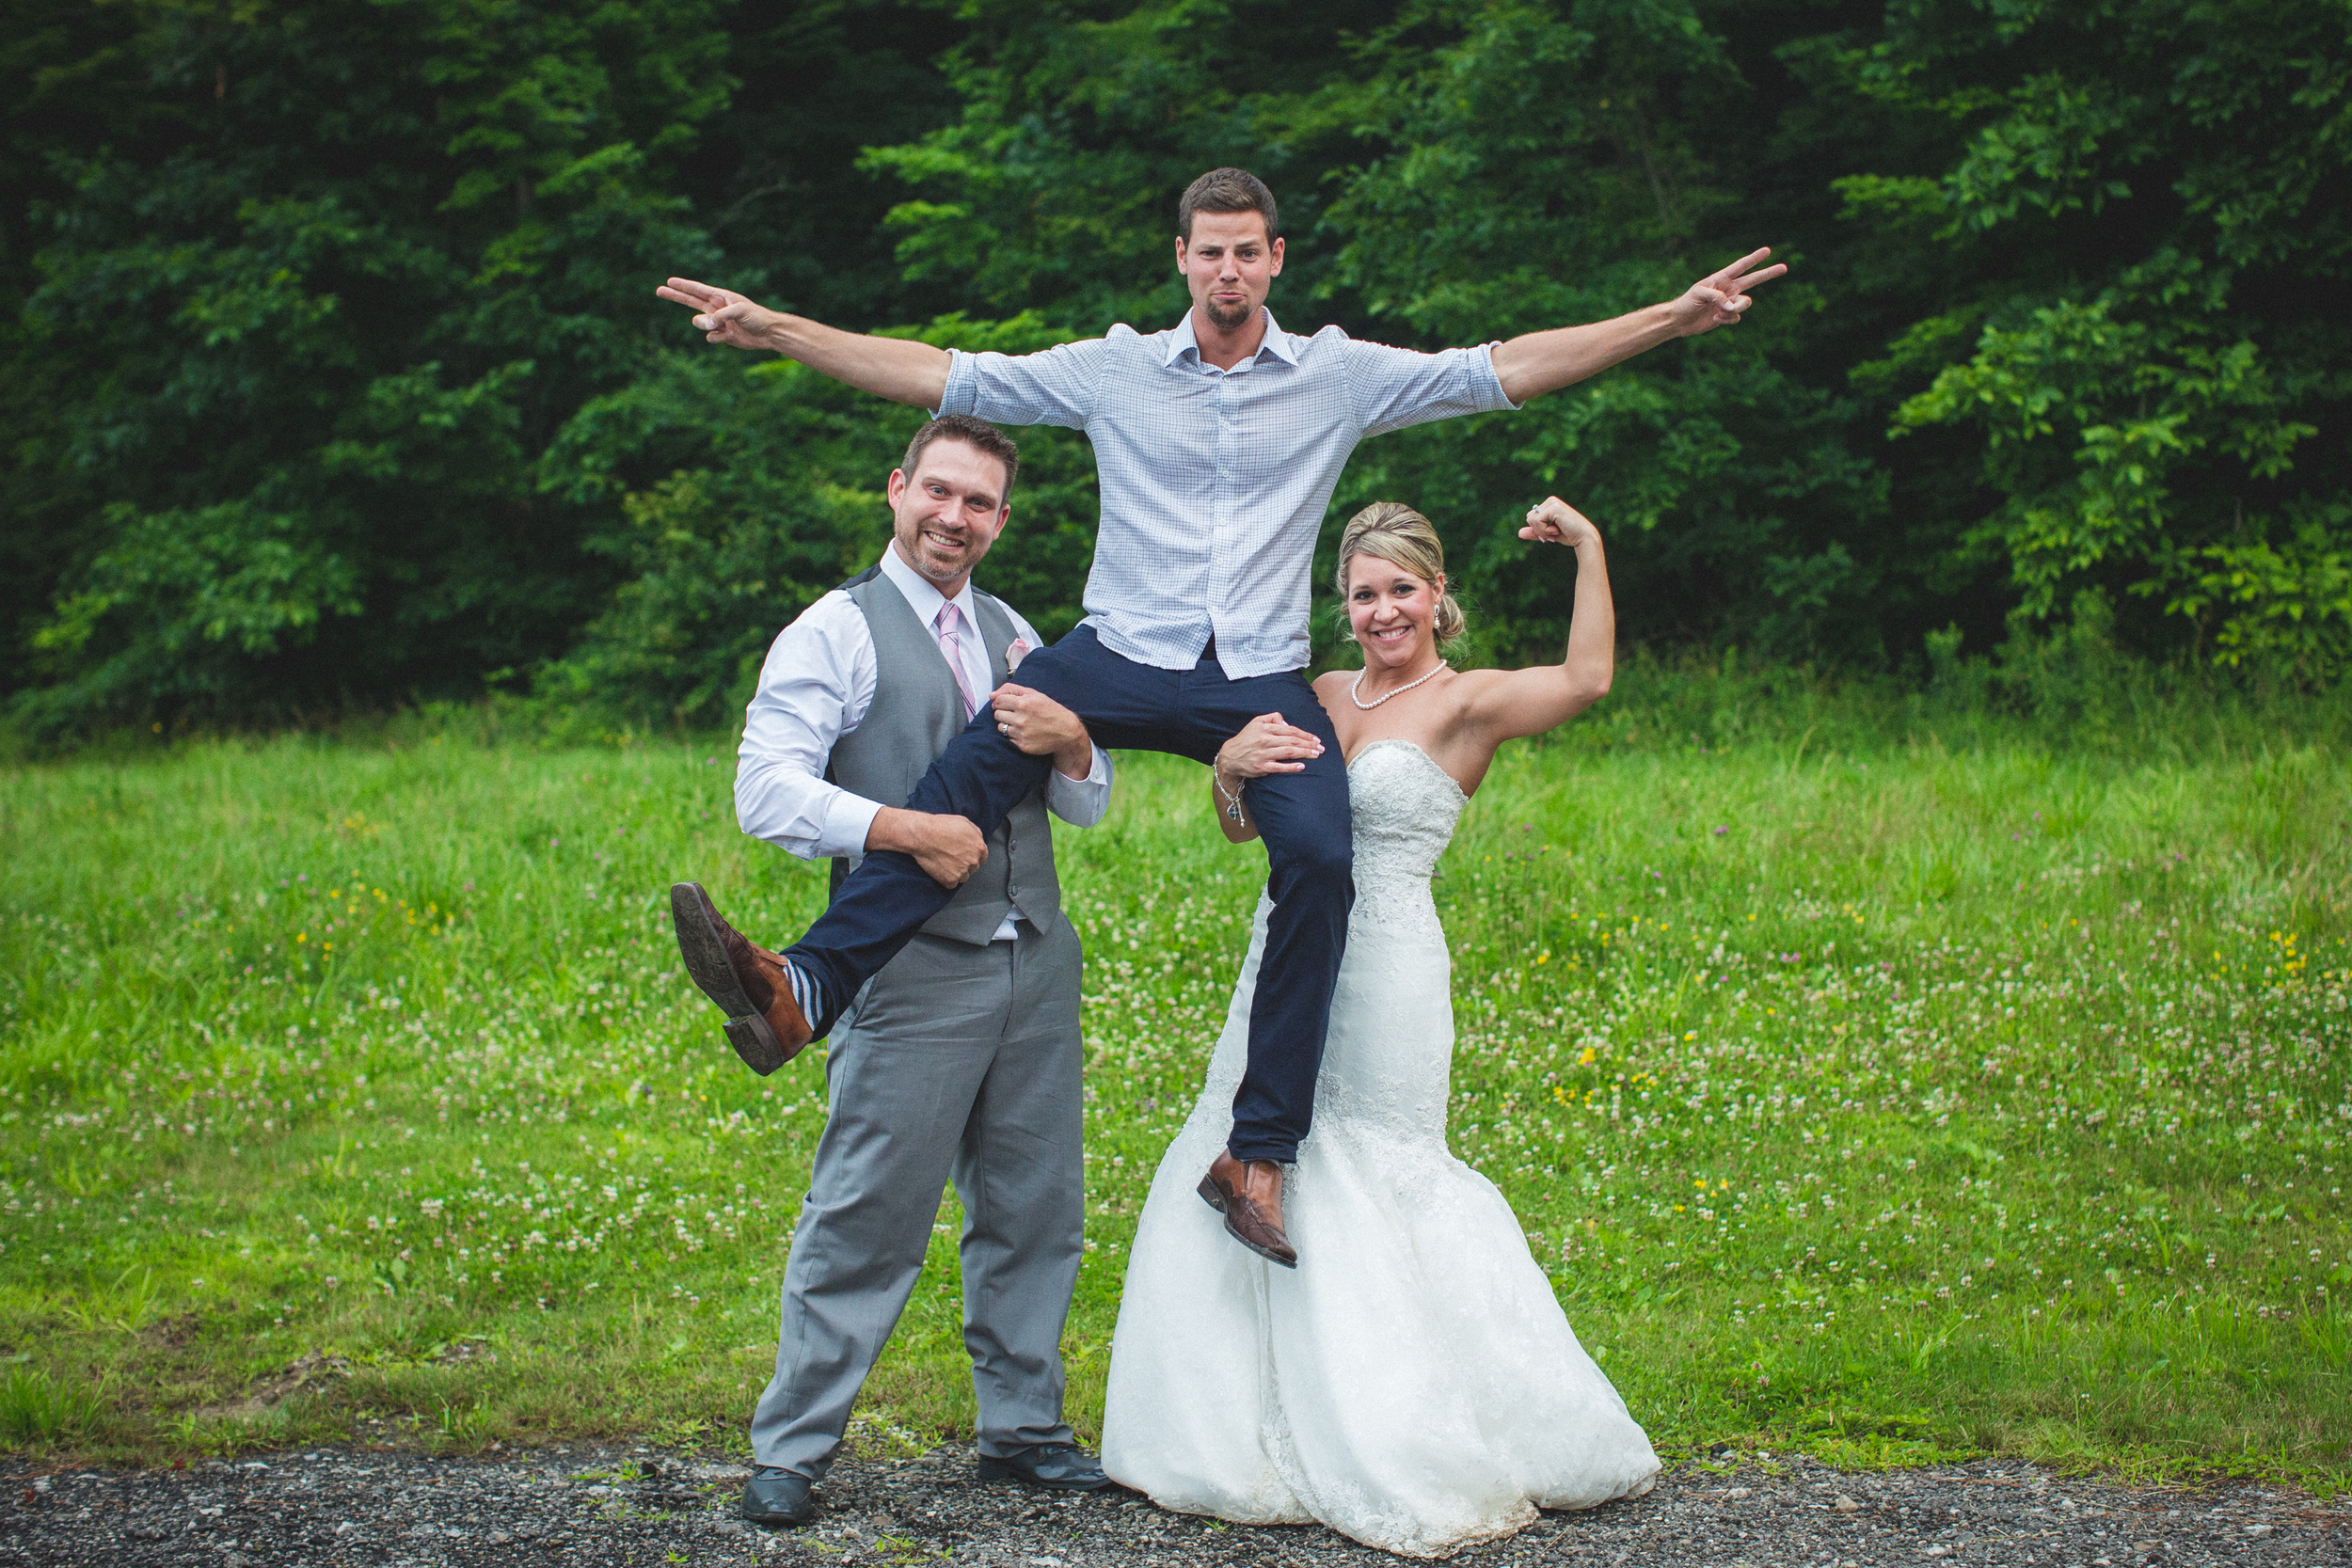 Wedding at meadow ridge events | cleveland wedding photography